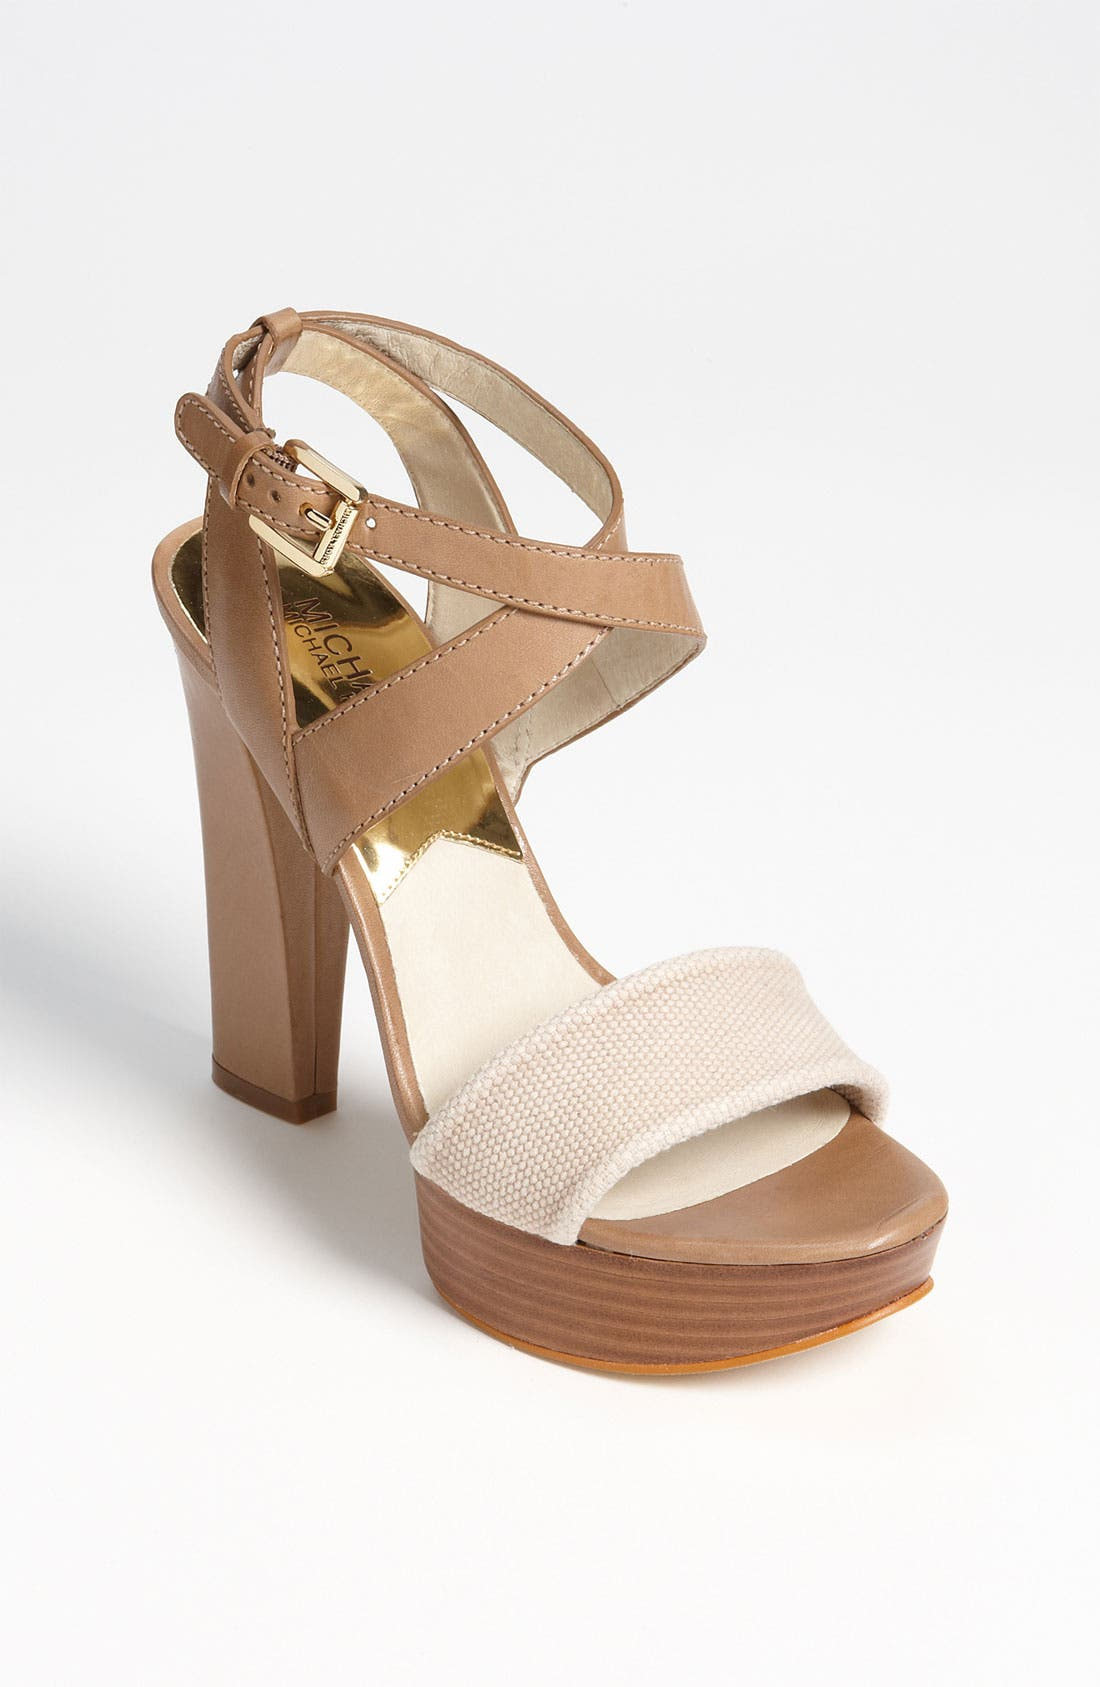 Alternate Image 1 Selected - MICHAEL Michael Kors 'Nadina' Sandal